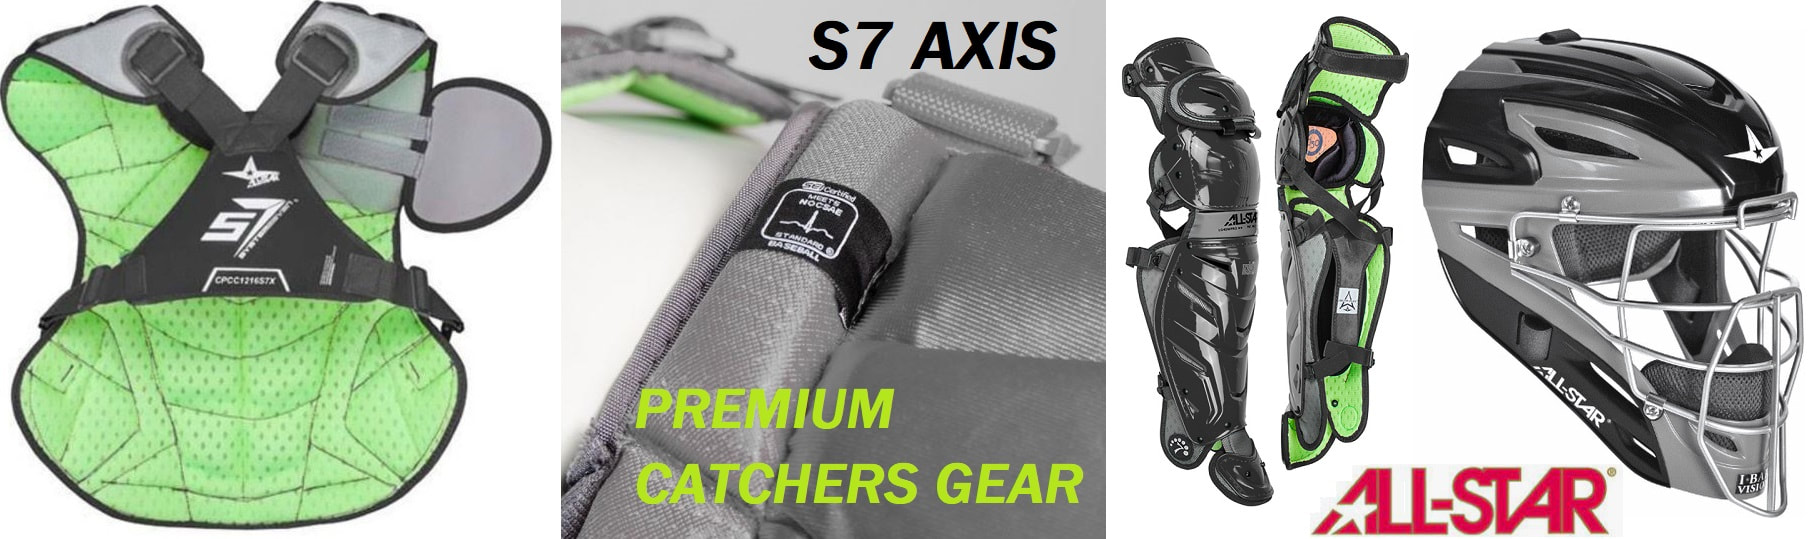 All-Star s7 AXIS Catchers Gear